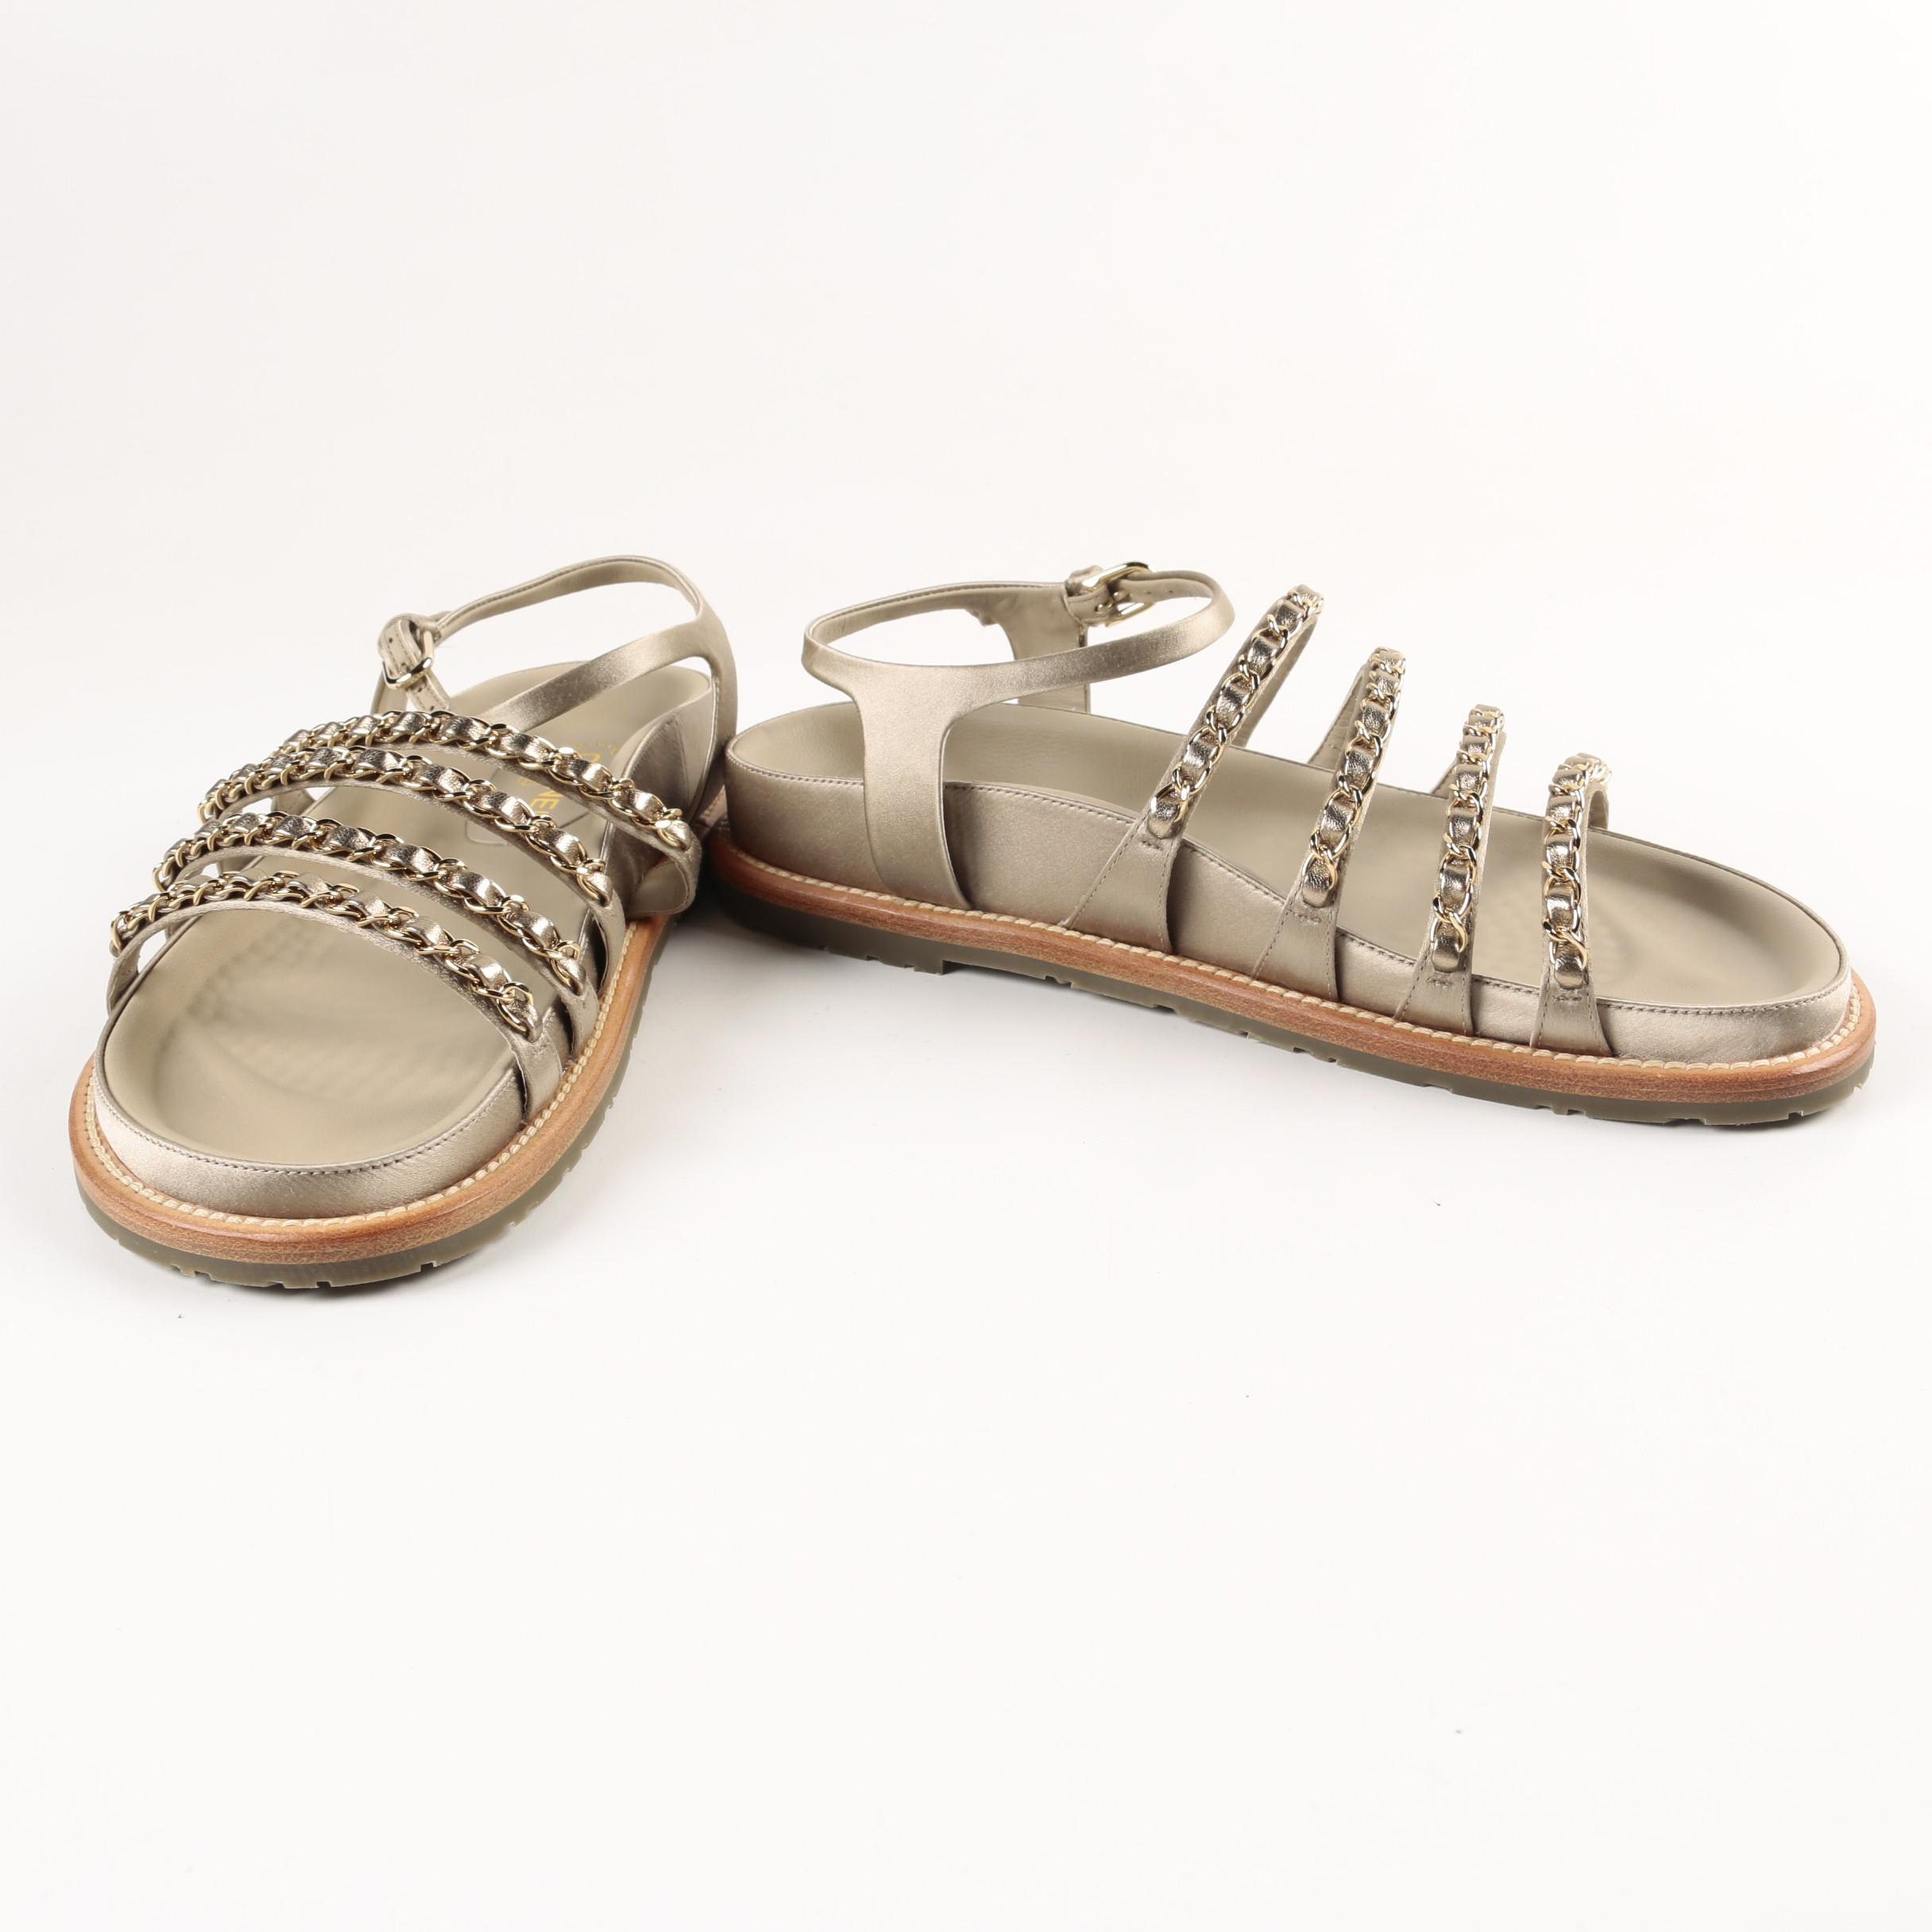 Chanel Beige Leather Chain Strap Sandals